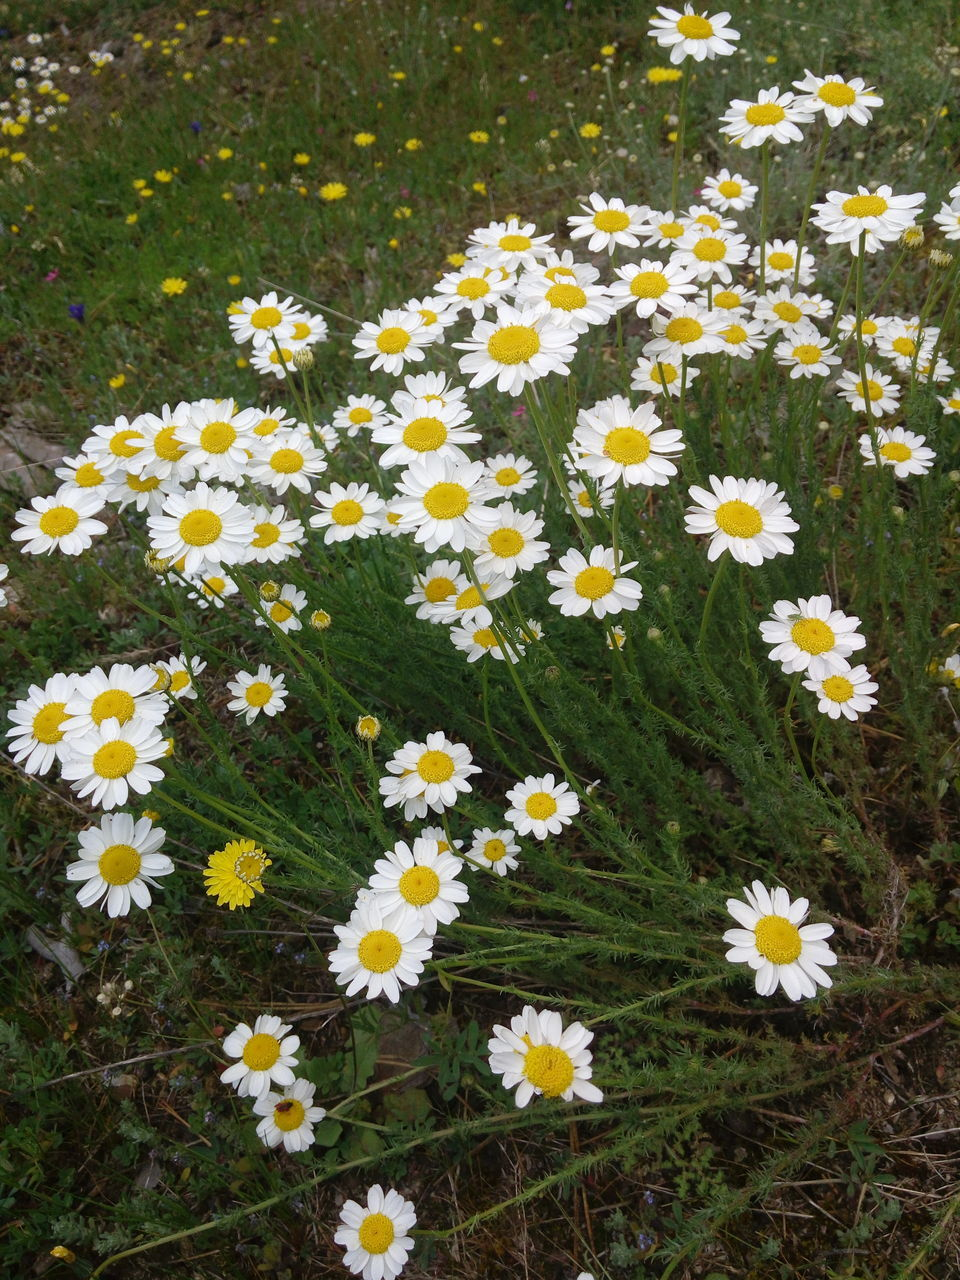 CLOSE-UP OF WHITE DAISY FLOWERS BLOOMING IN FIELD